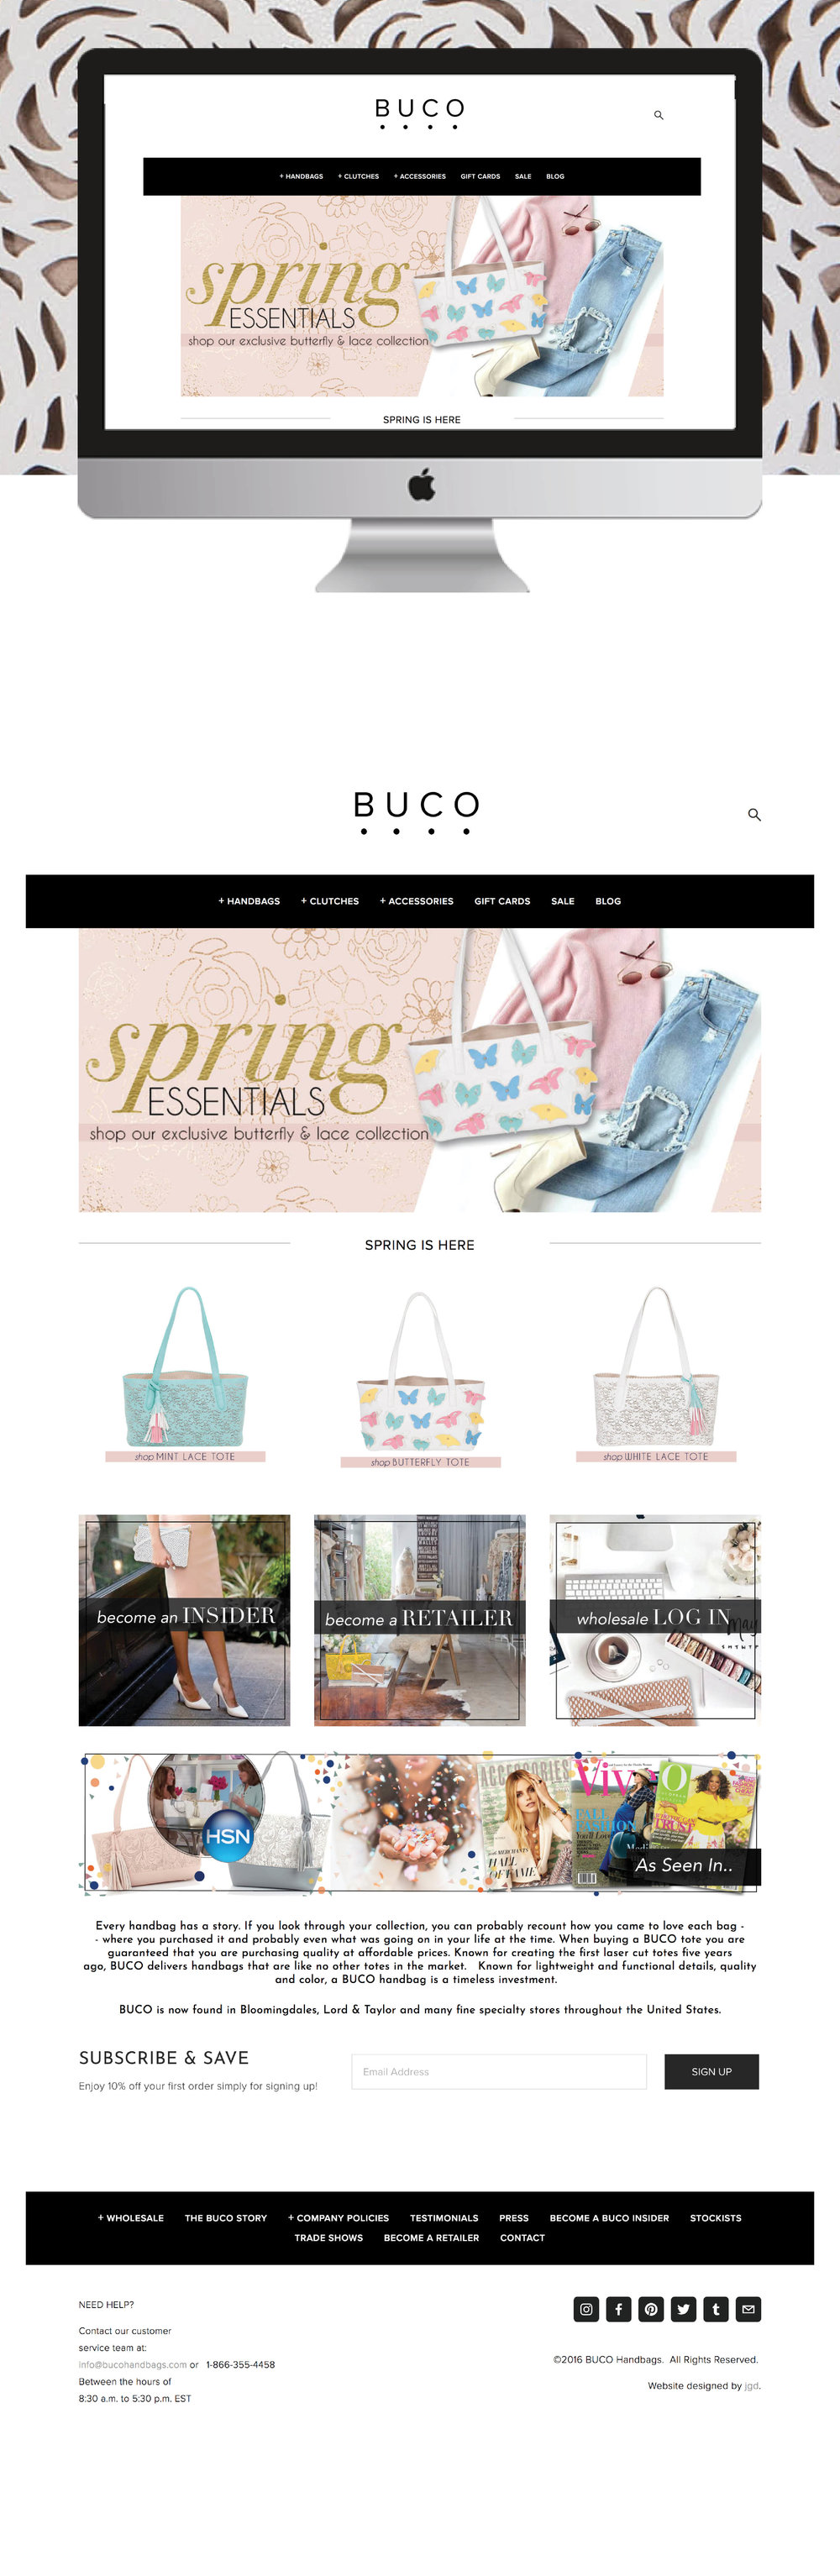 E-Commerce Squarespace Website Design for BUCO Handbags by jgdigital.co